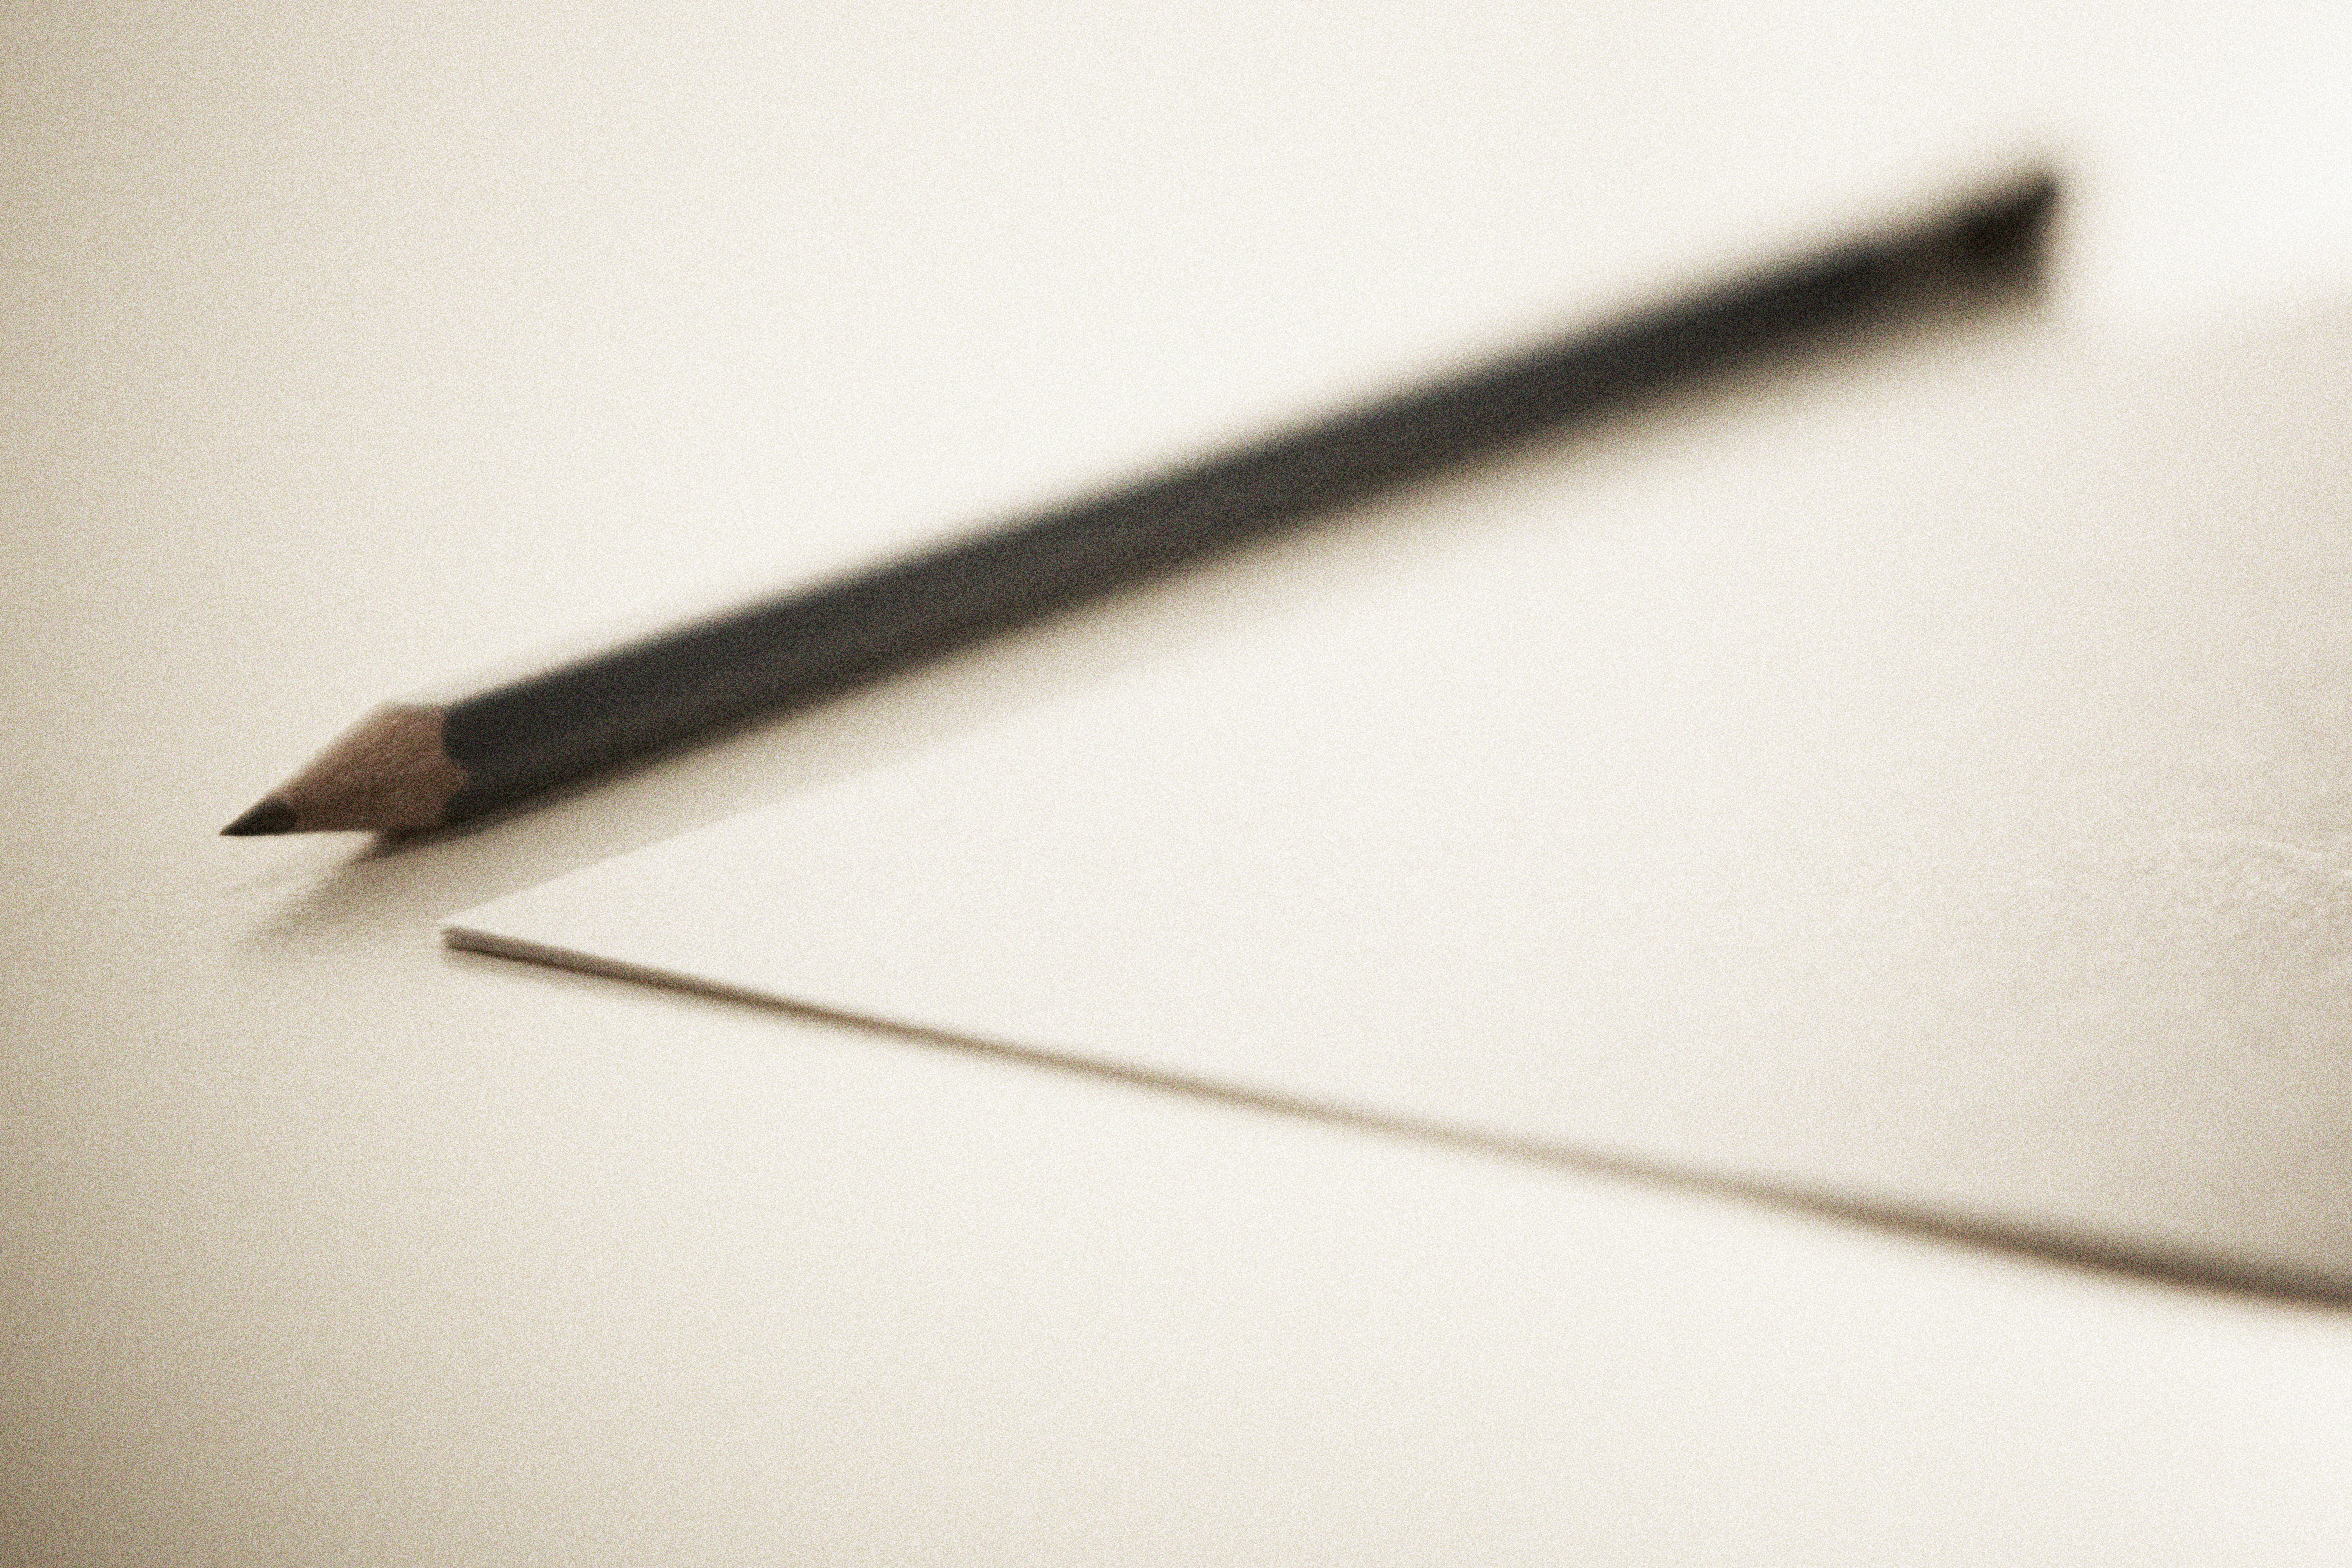 file sharpened pencil next to sheet paper jpg wikimedia commons